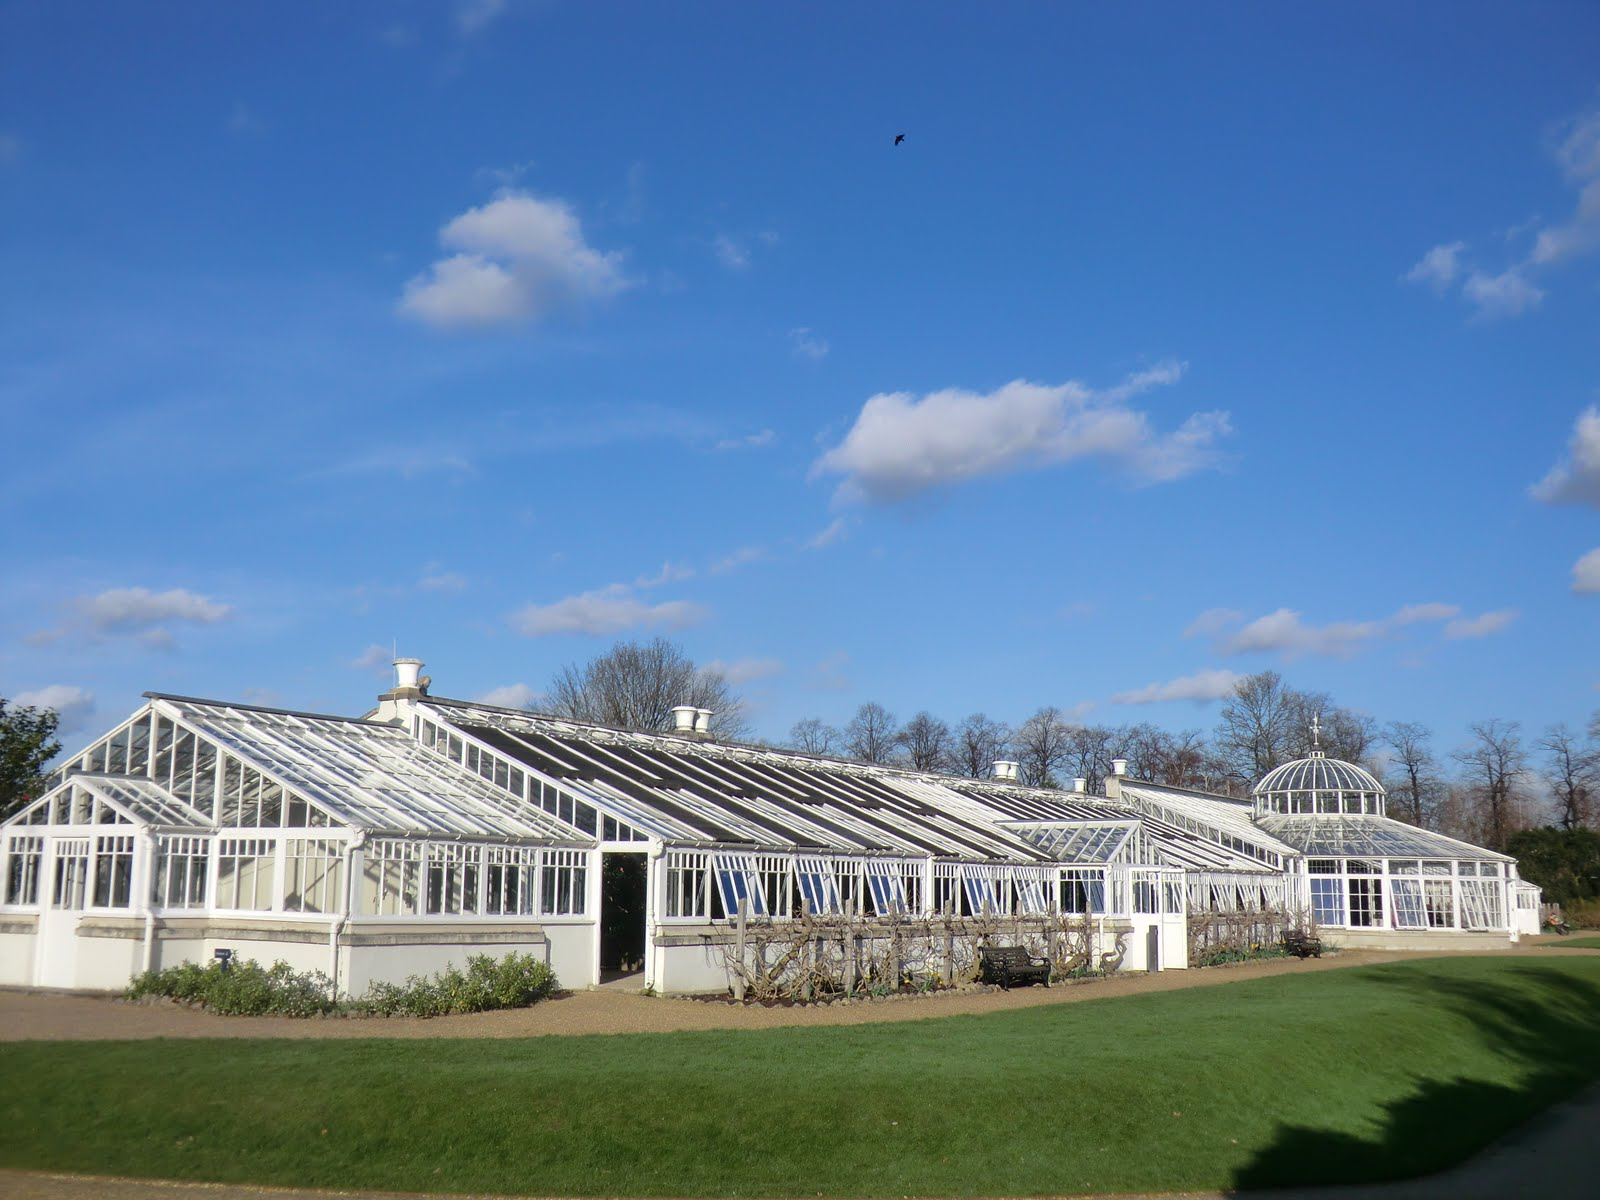 CIMG2512 Conservatory, Chiswick House